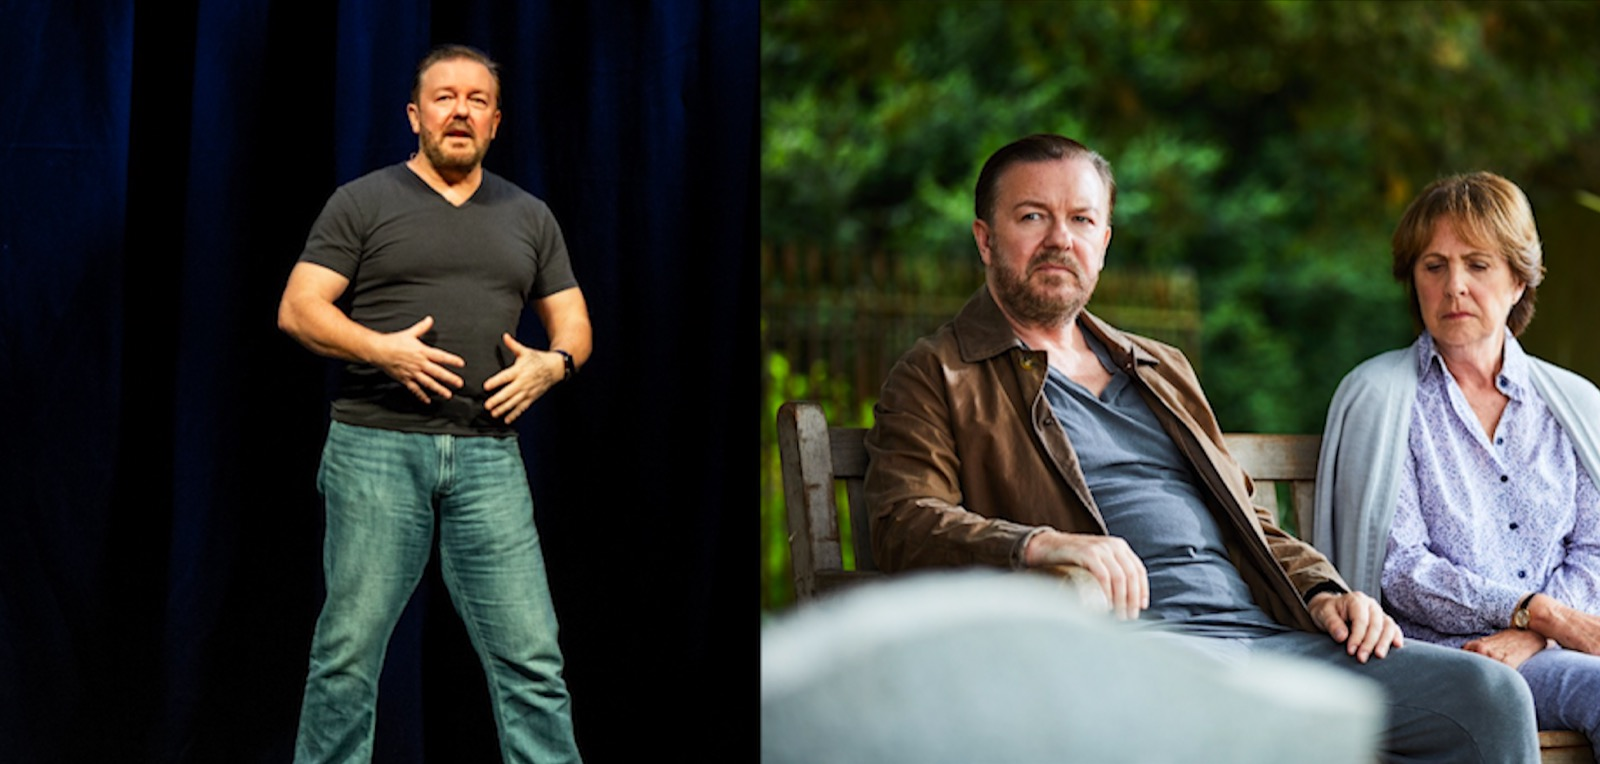 Ricky Gervais discusses his offer to do a stand-up show in Space